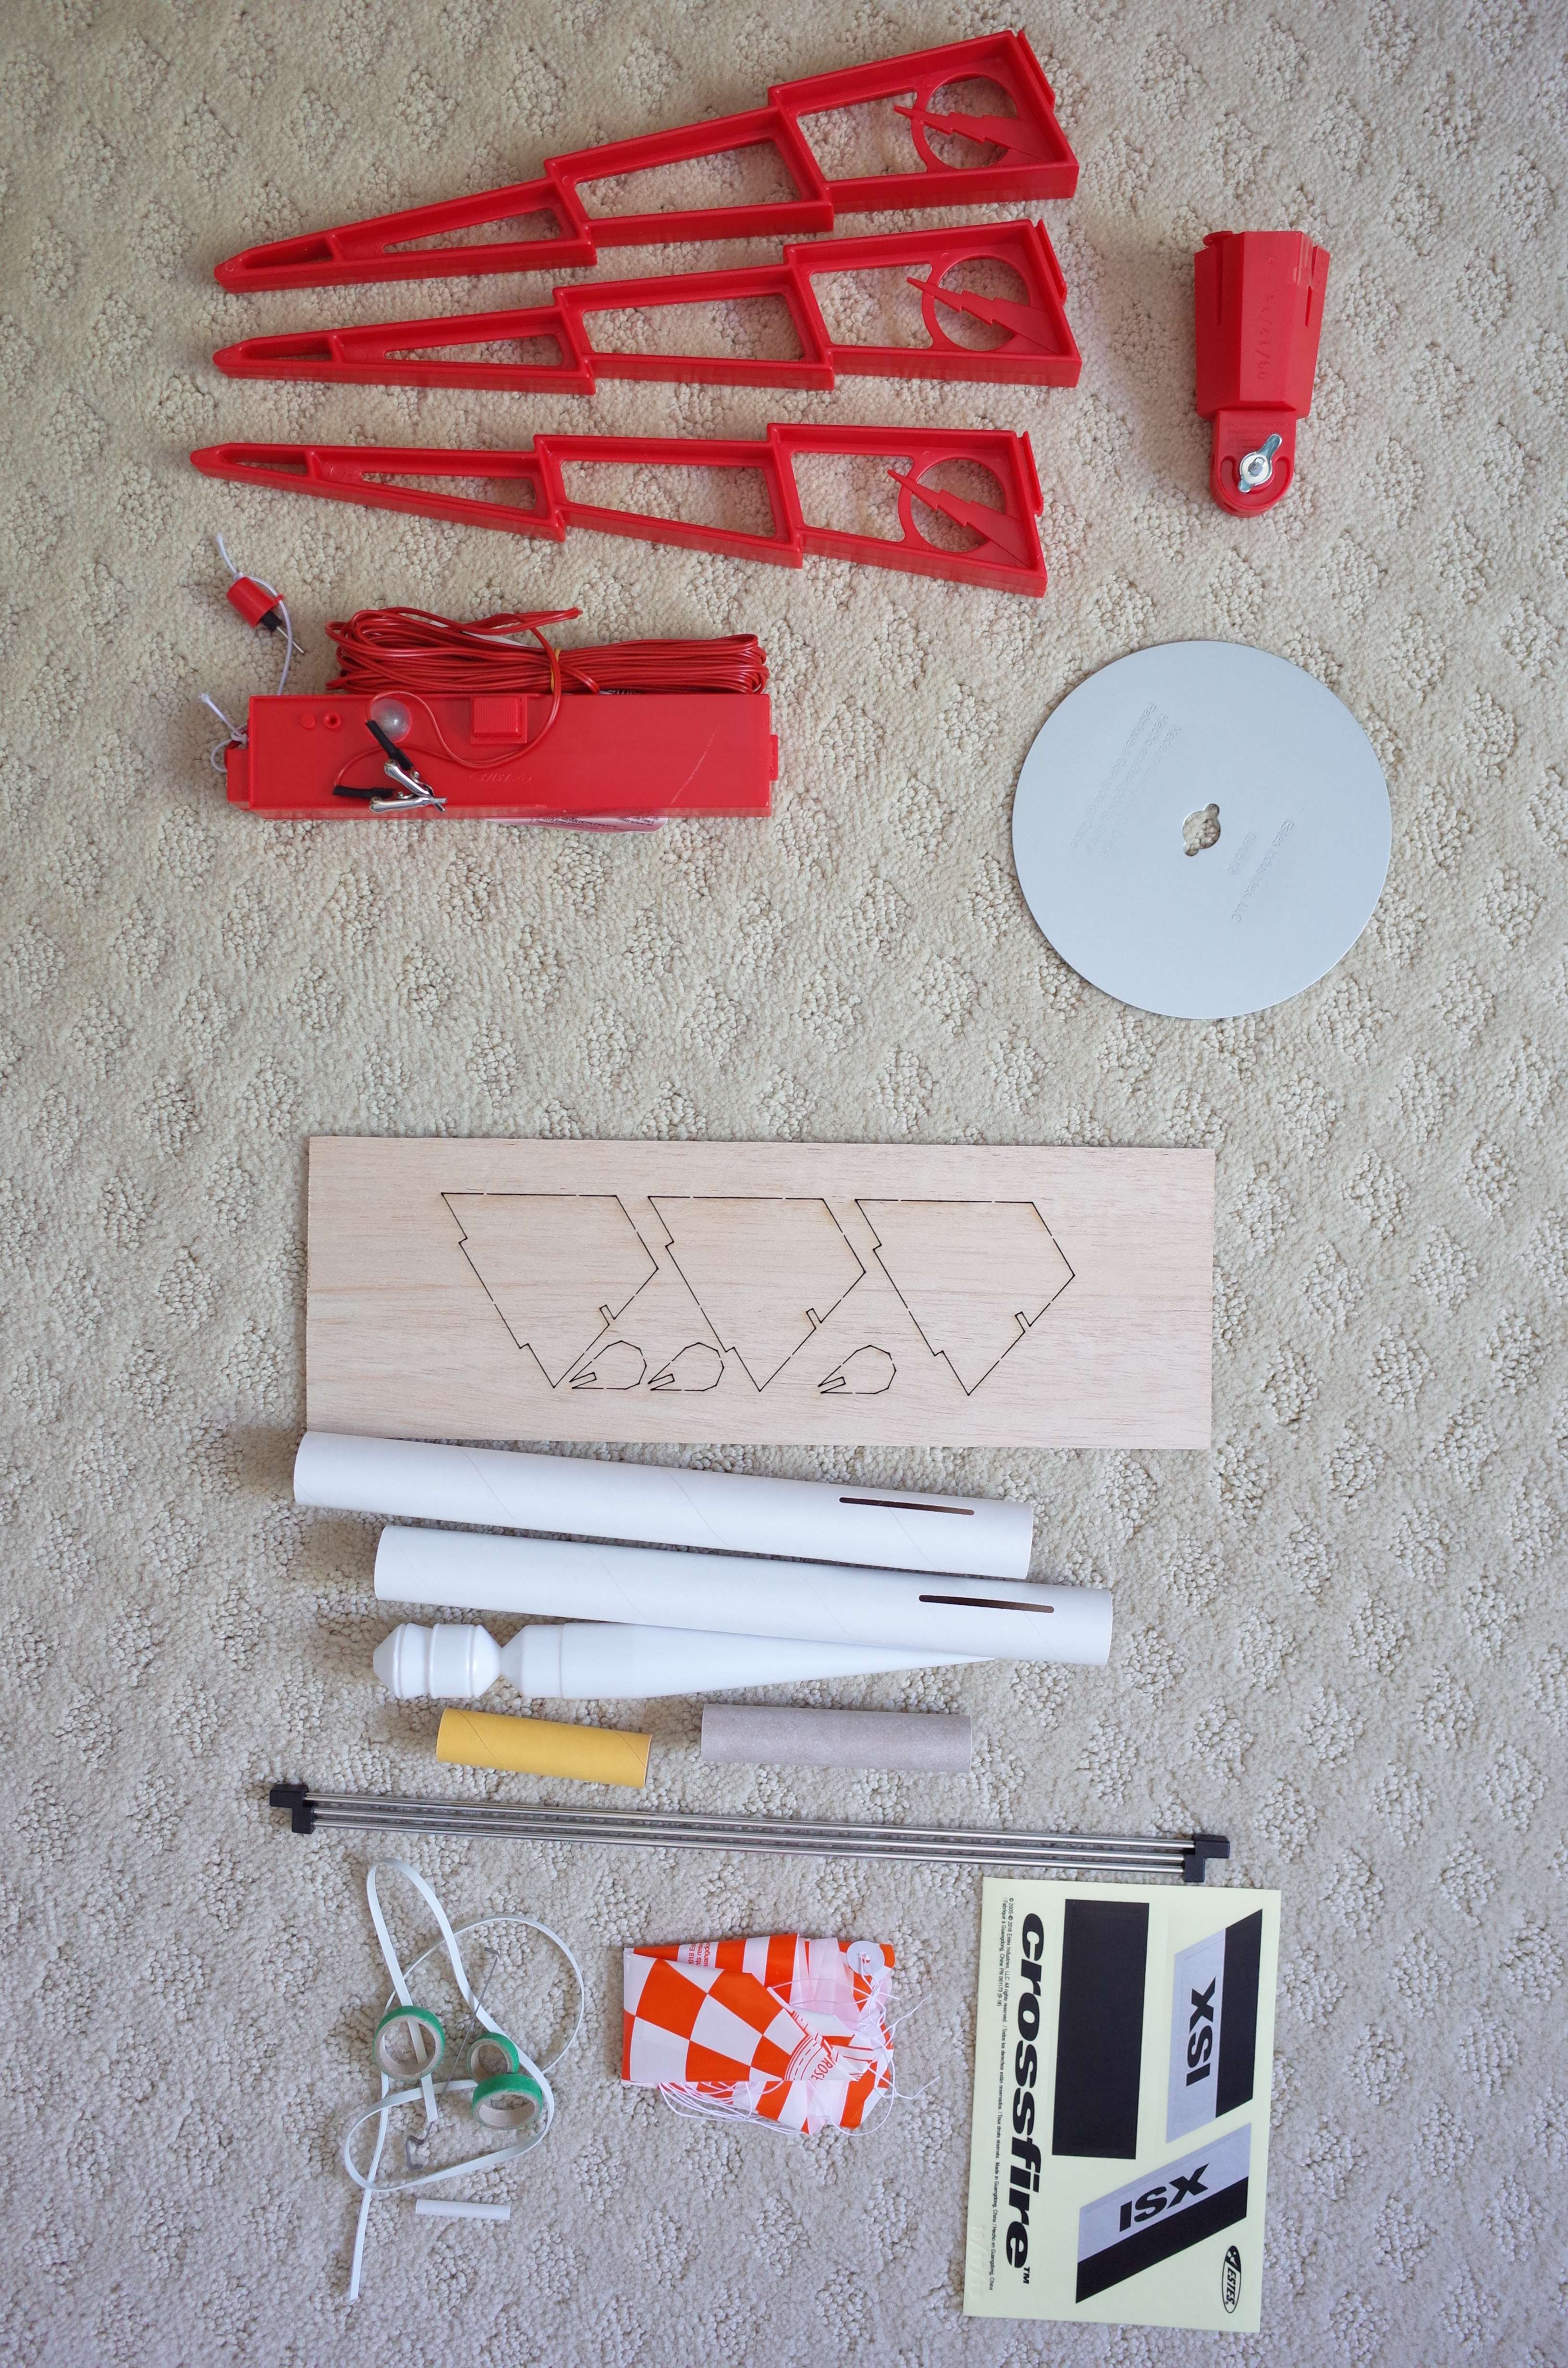 Unassembled rocket kit and launch pad